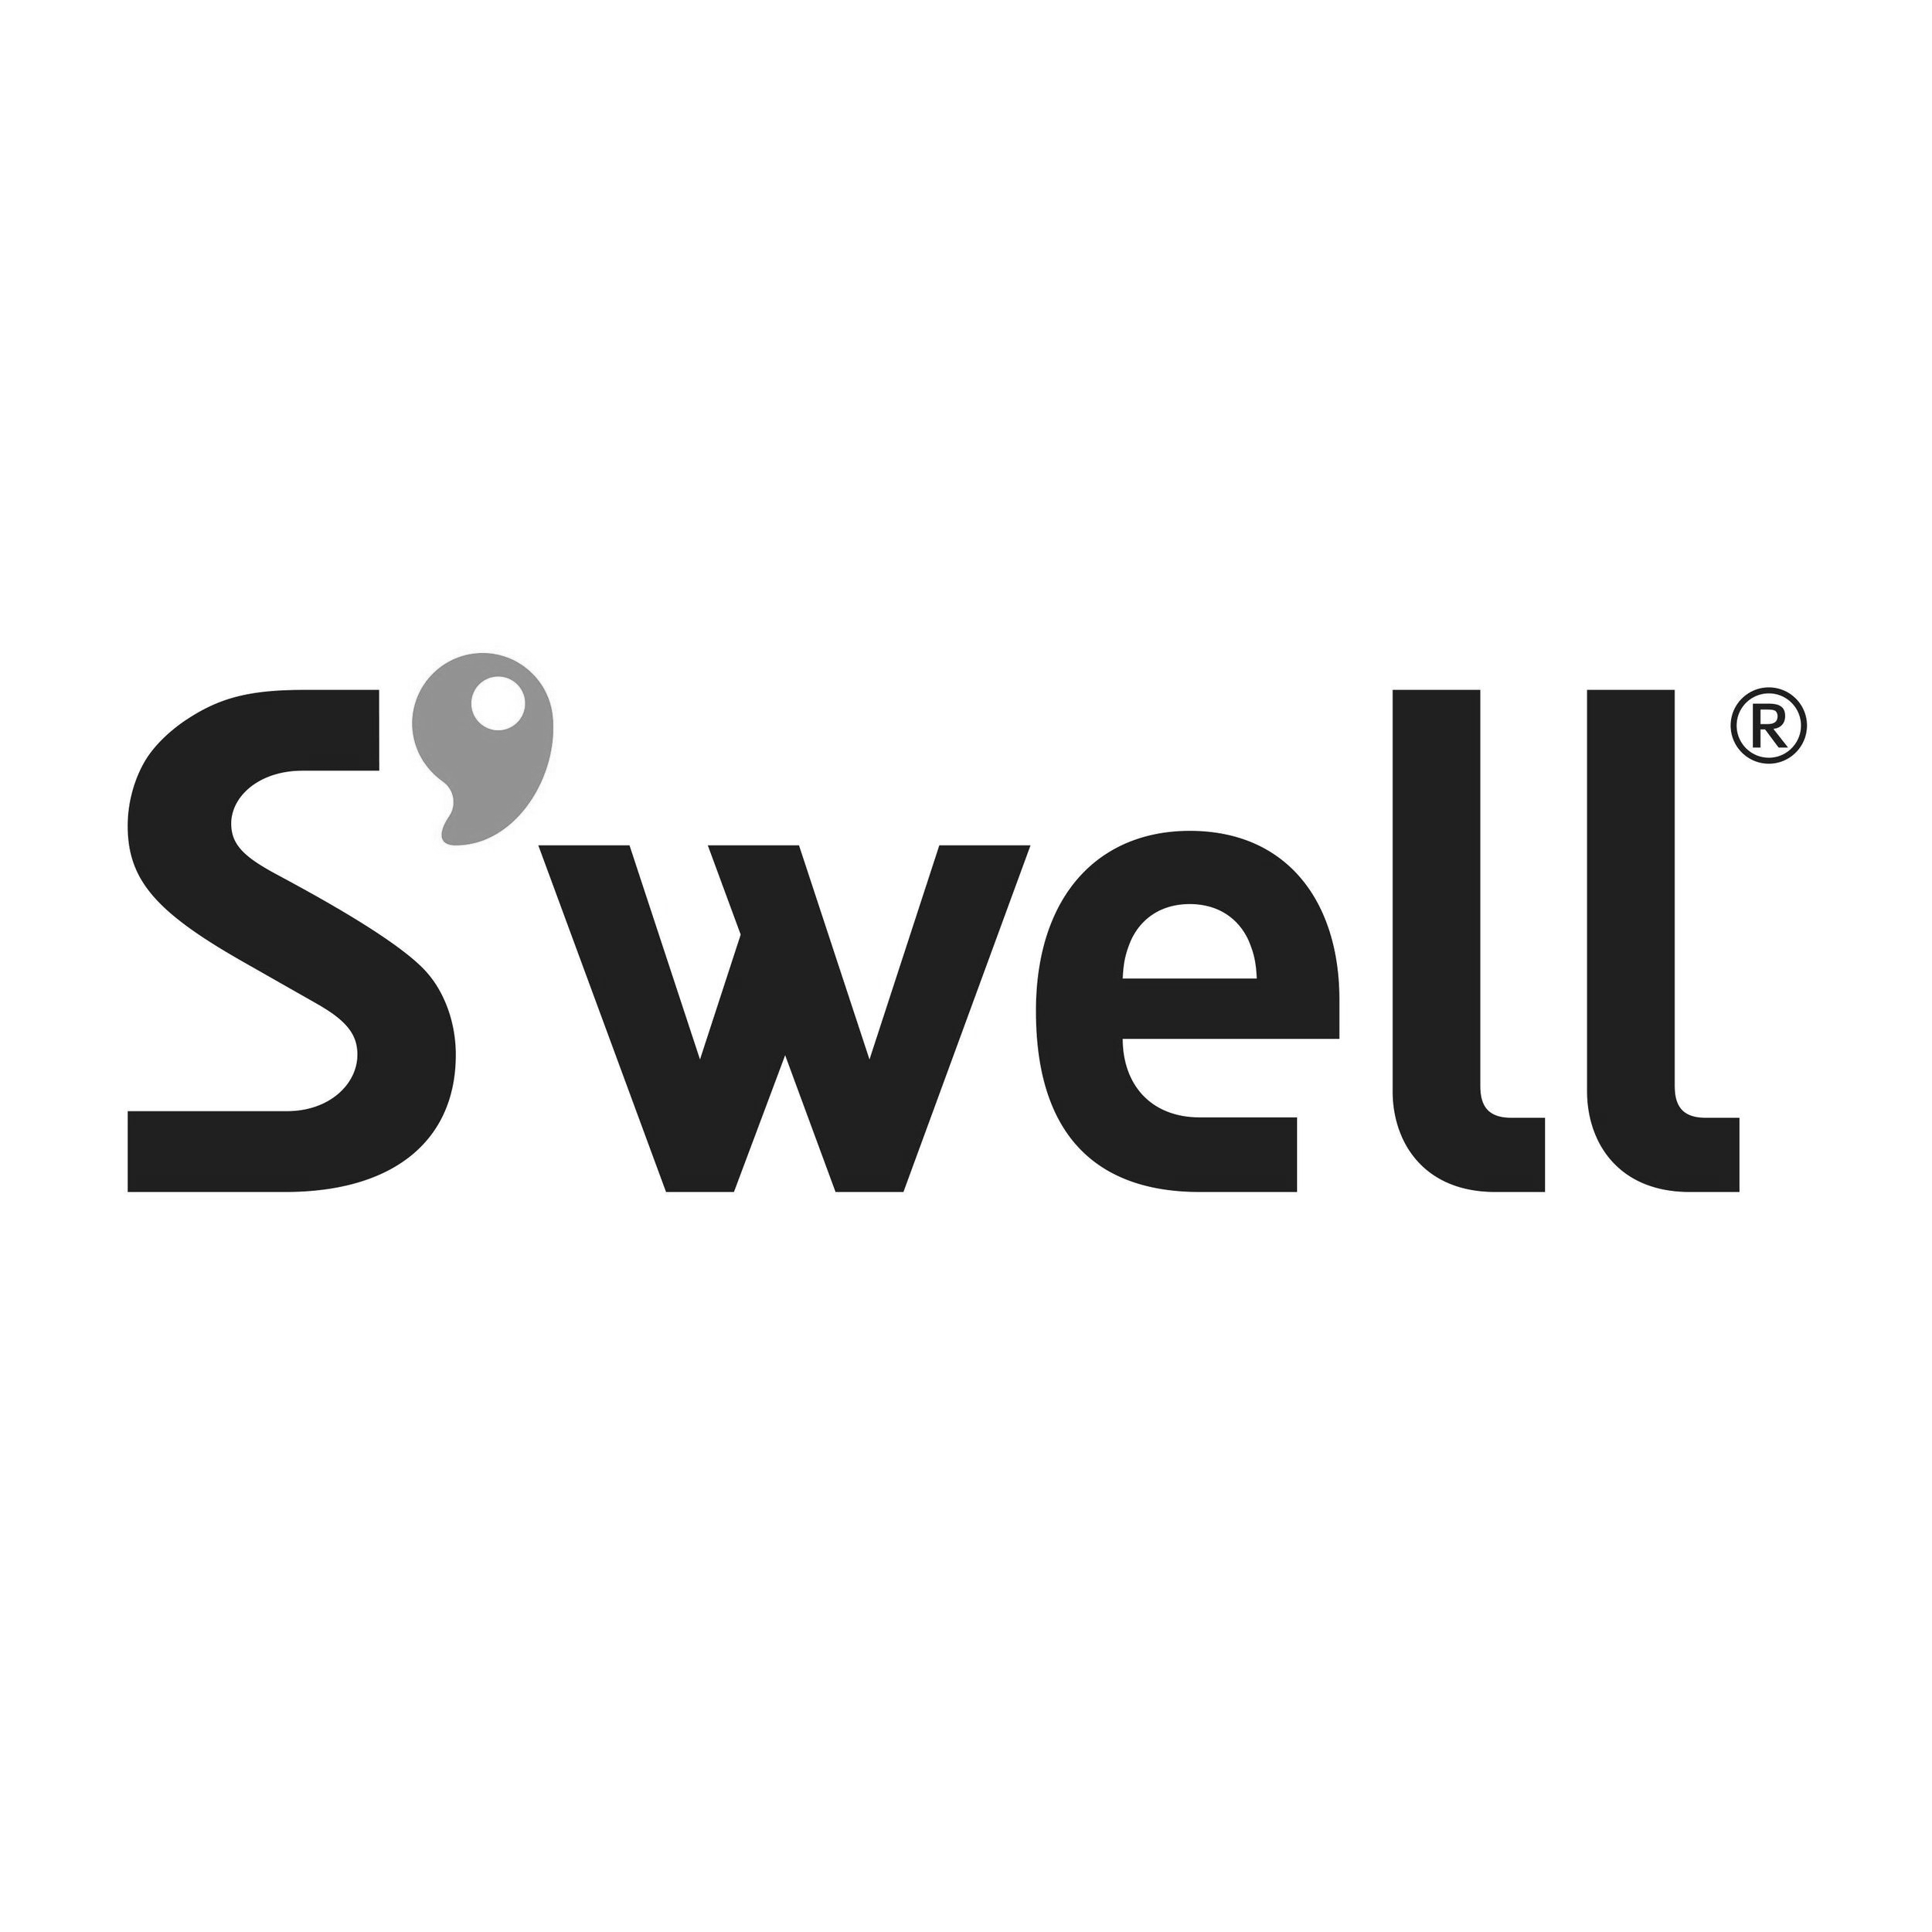 swell_logo.jpeg